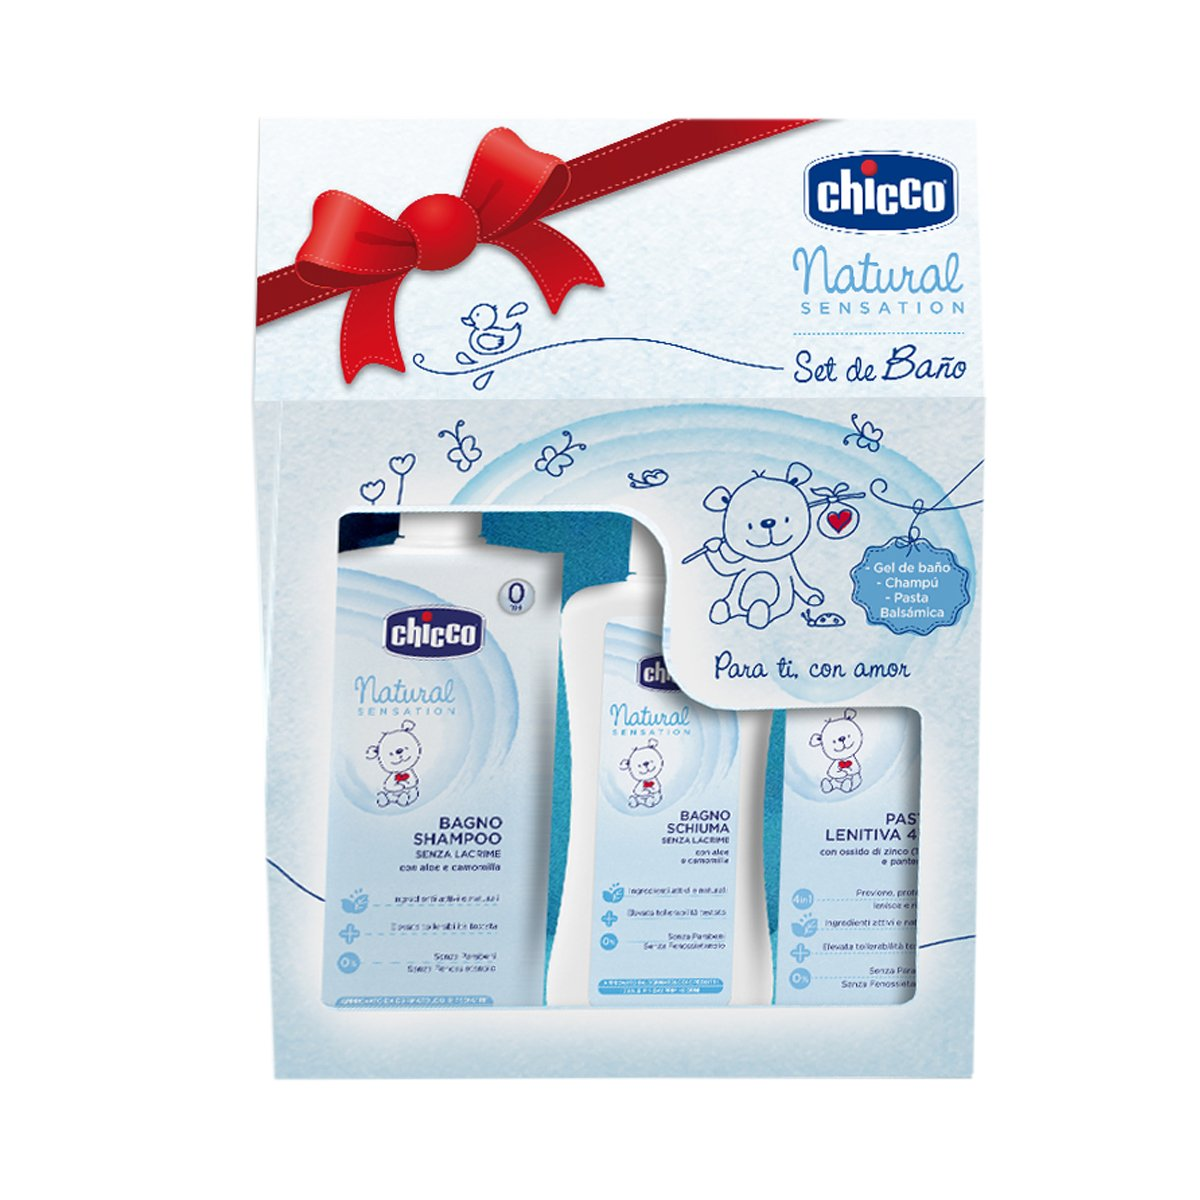 Chicco Natural Sensation – Toiletry Set Bath set